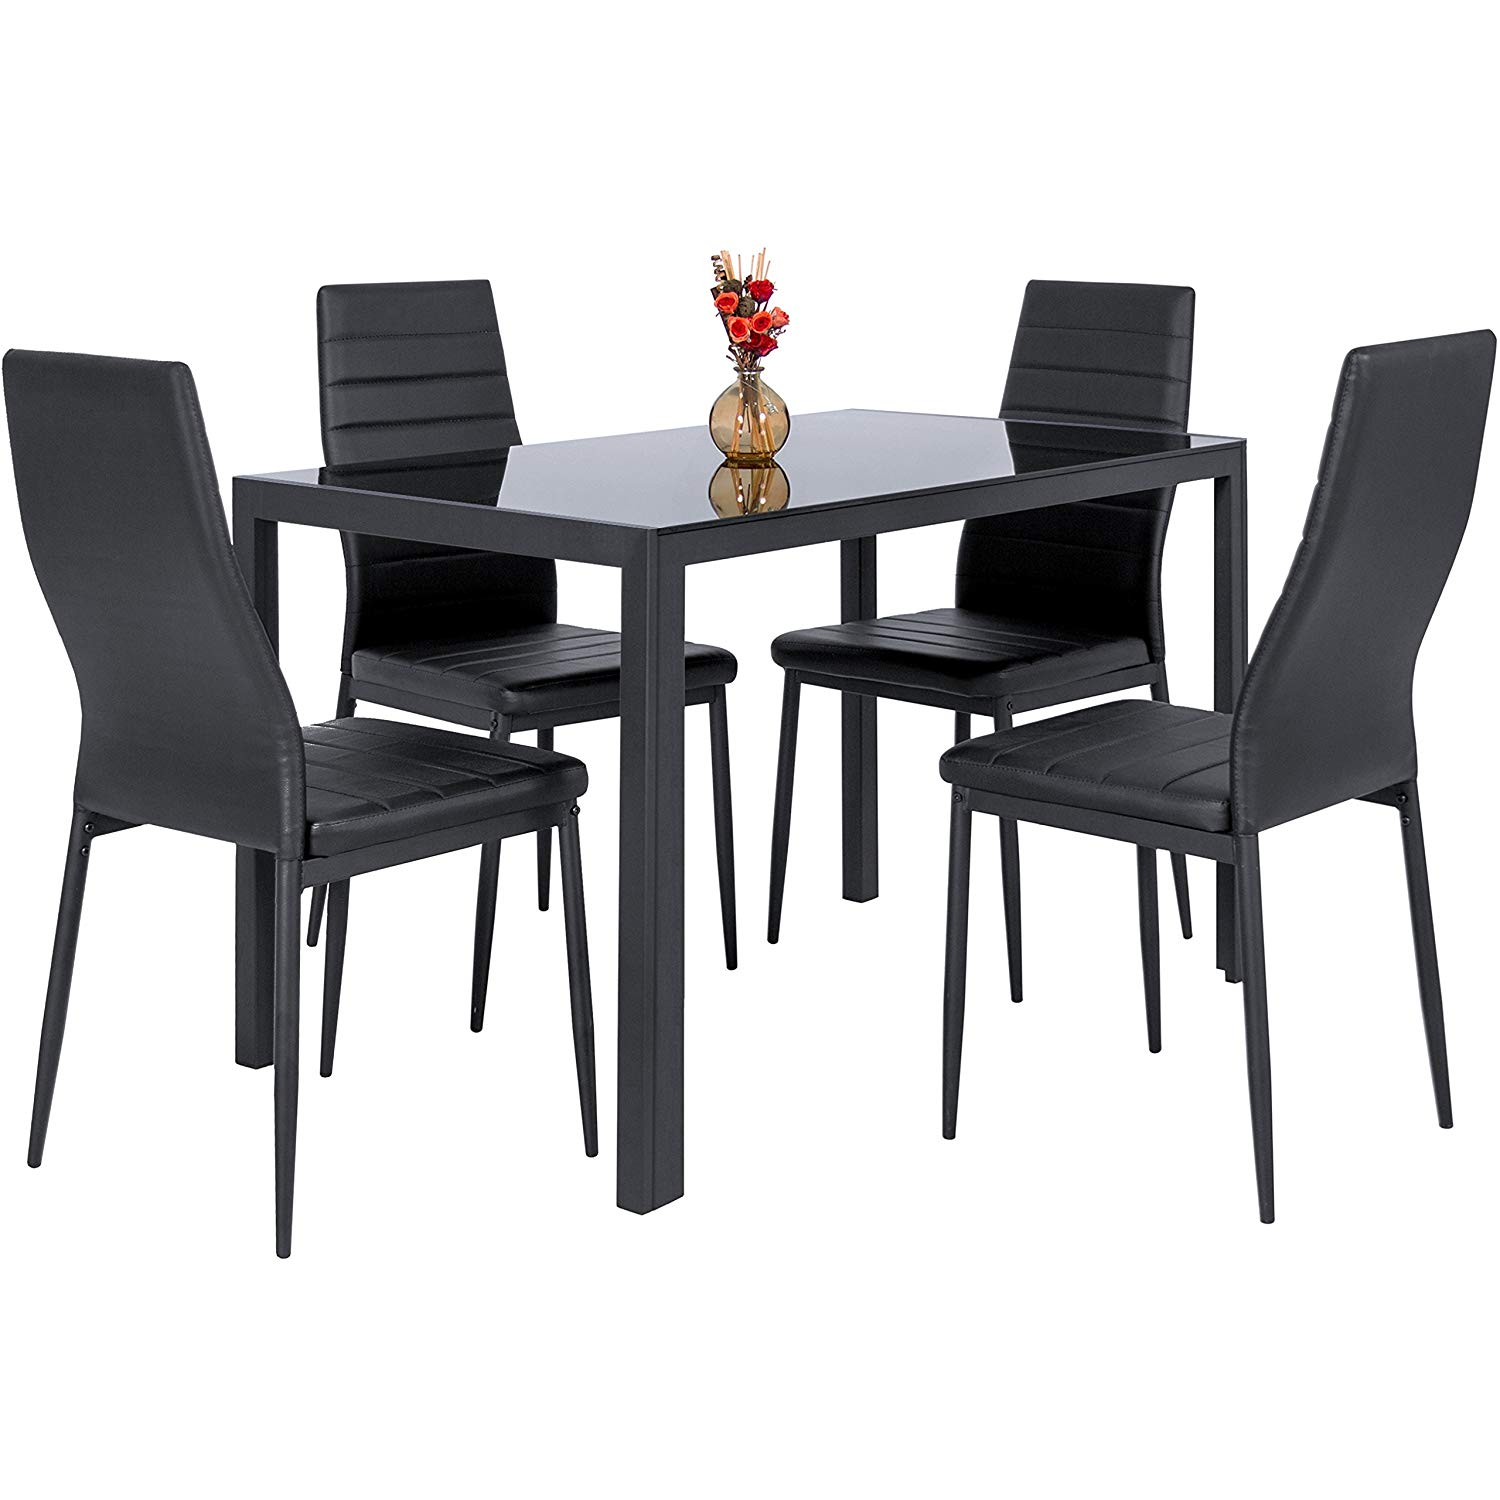 Traveller Location - Best Choice Products 5-Piece Kitchen Dining Table Set w/Glass  Tabletop, 4 Faux Leather Metal Frame Chairs for Dining Room, Kitchen,